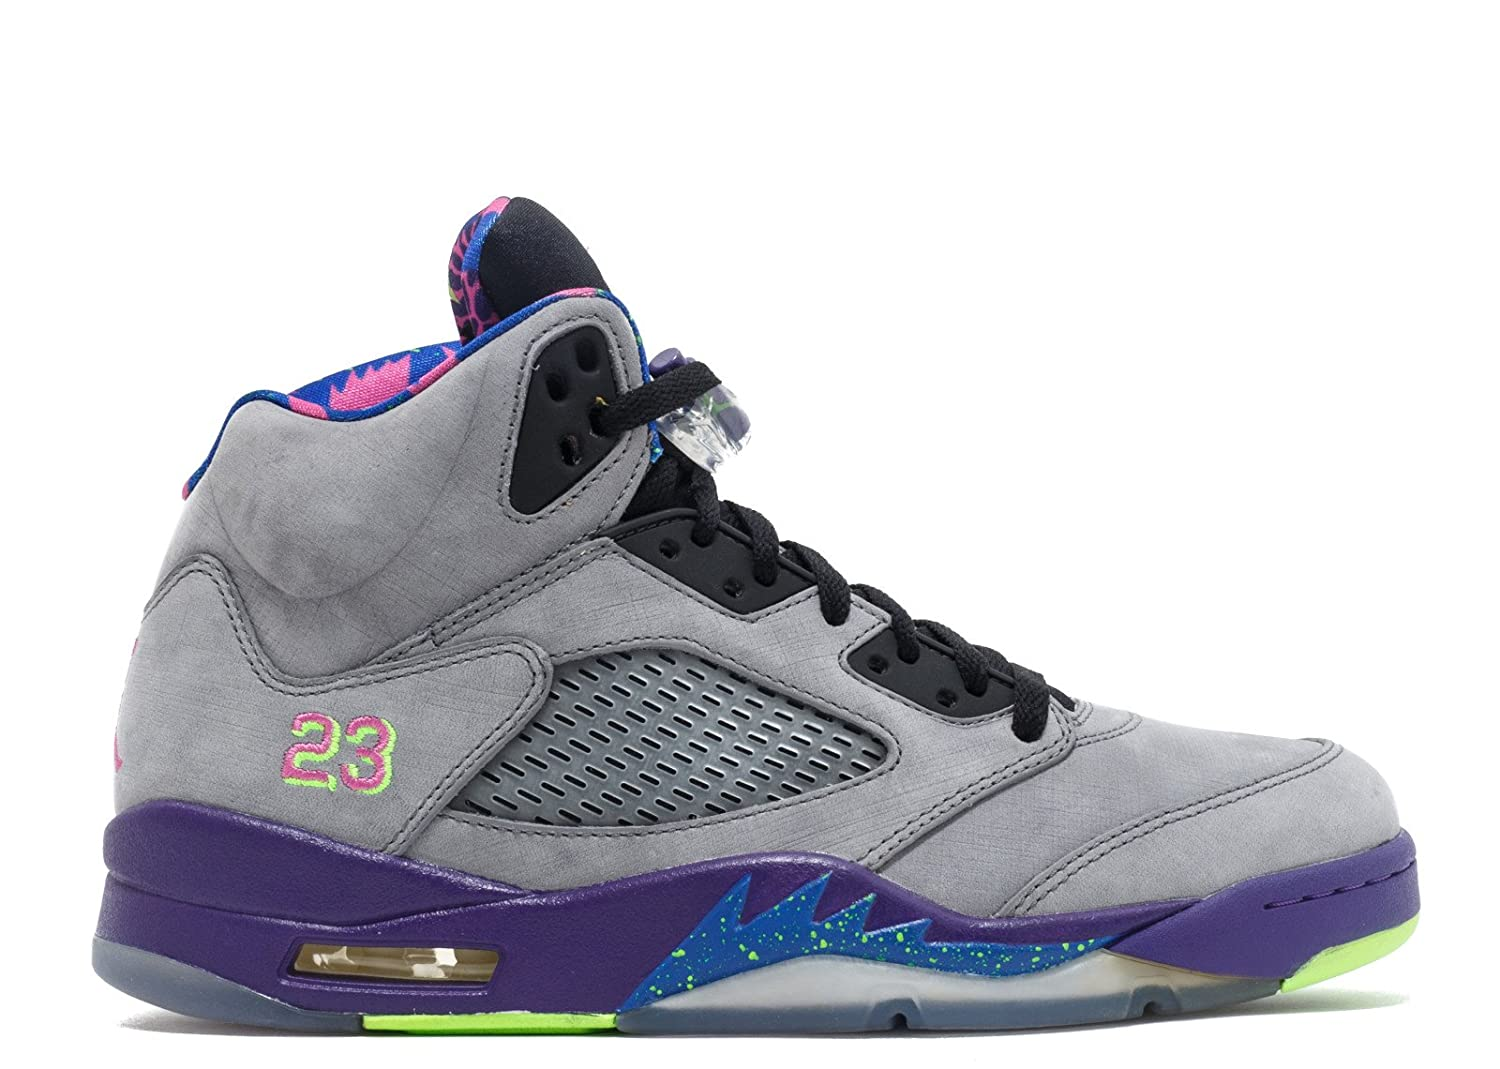 best authentic 668a7 7df5b Amazon.com   Jordan Nike Mens Air 5 Retro Bel Air Cool Grey Suede  Basketball-Shoes Size 11   Basketball